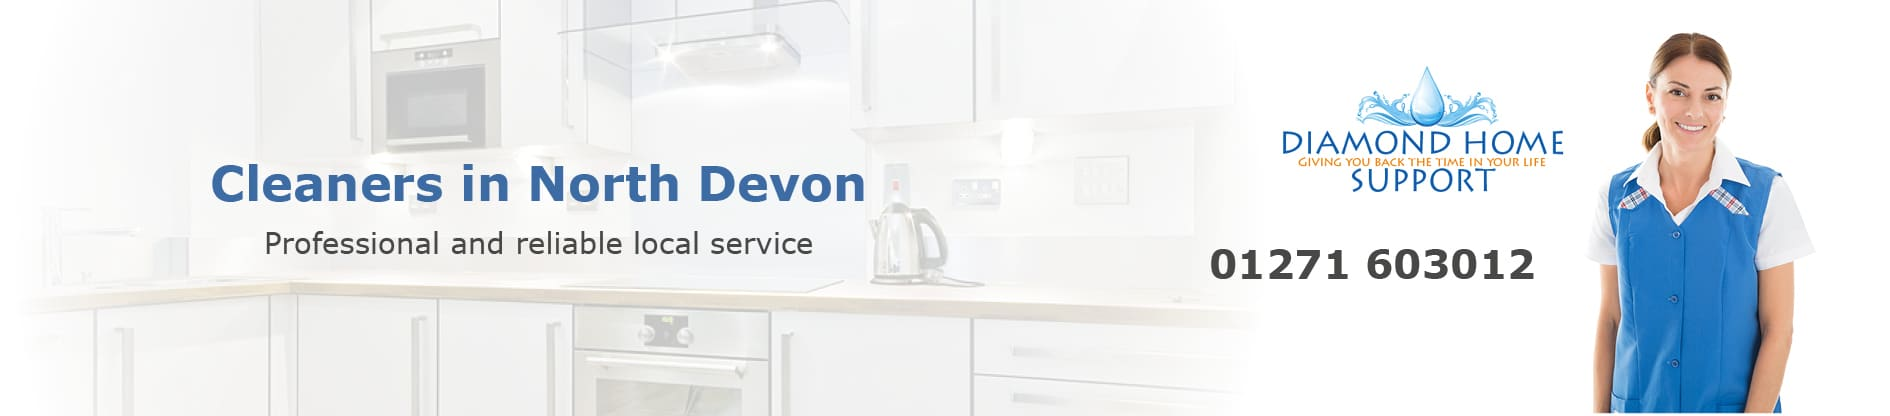 Cleaners in North Devon